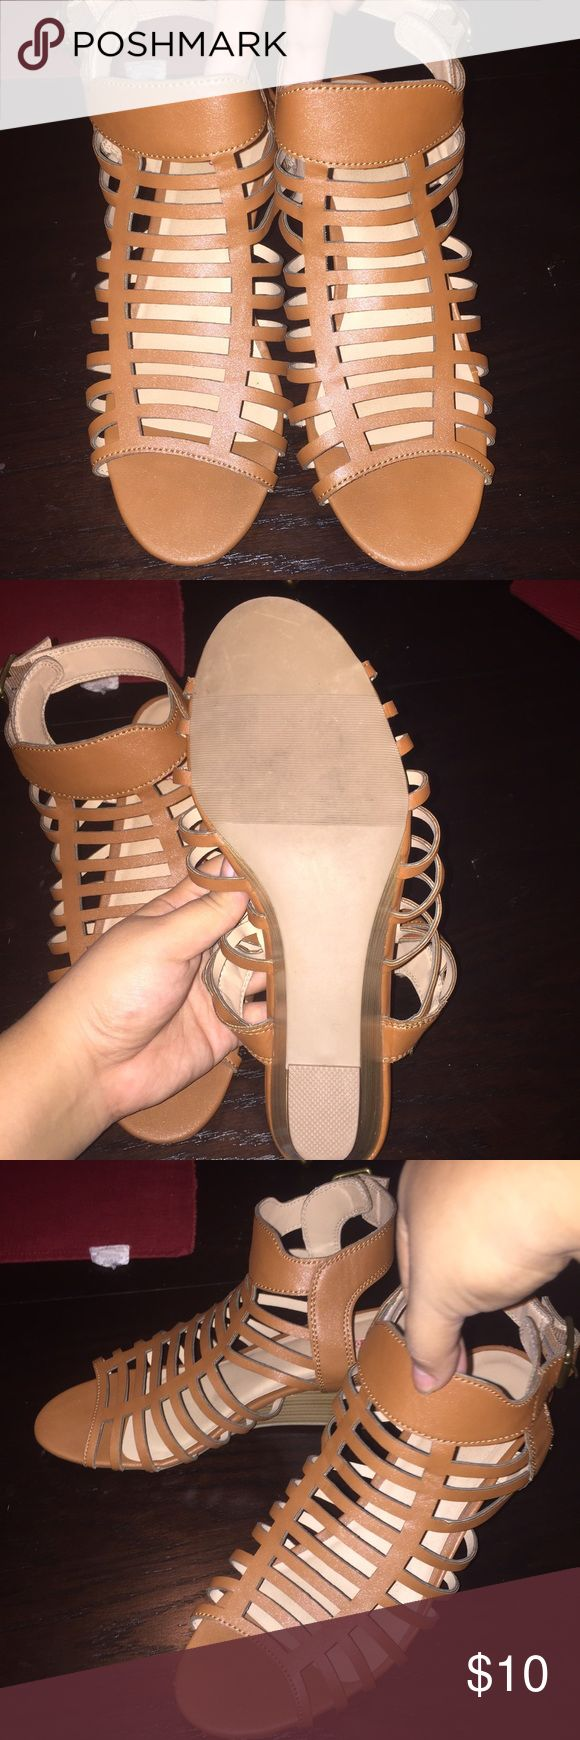 """Just Fab Wedges. Never worn wedges. """"Jesus sandal style"""" in size 9. JustFab Shoes Wedges"""